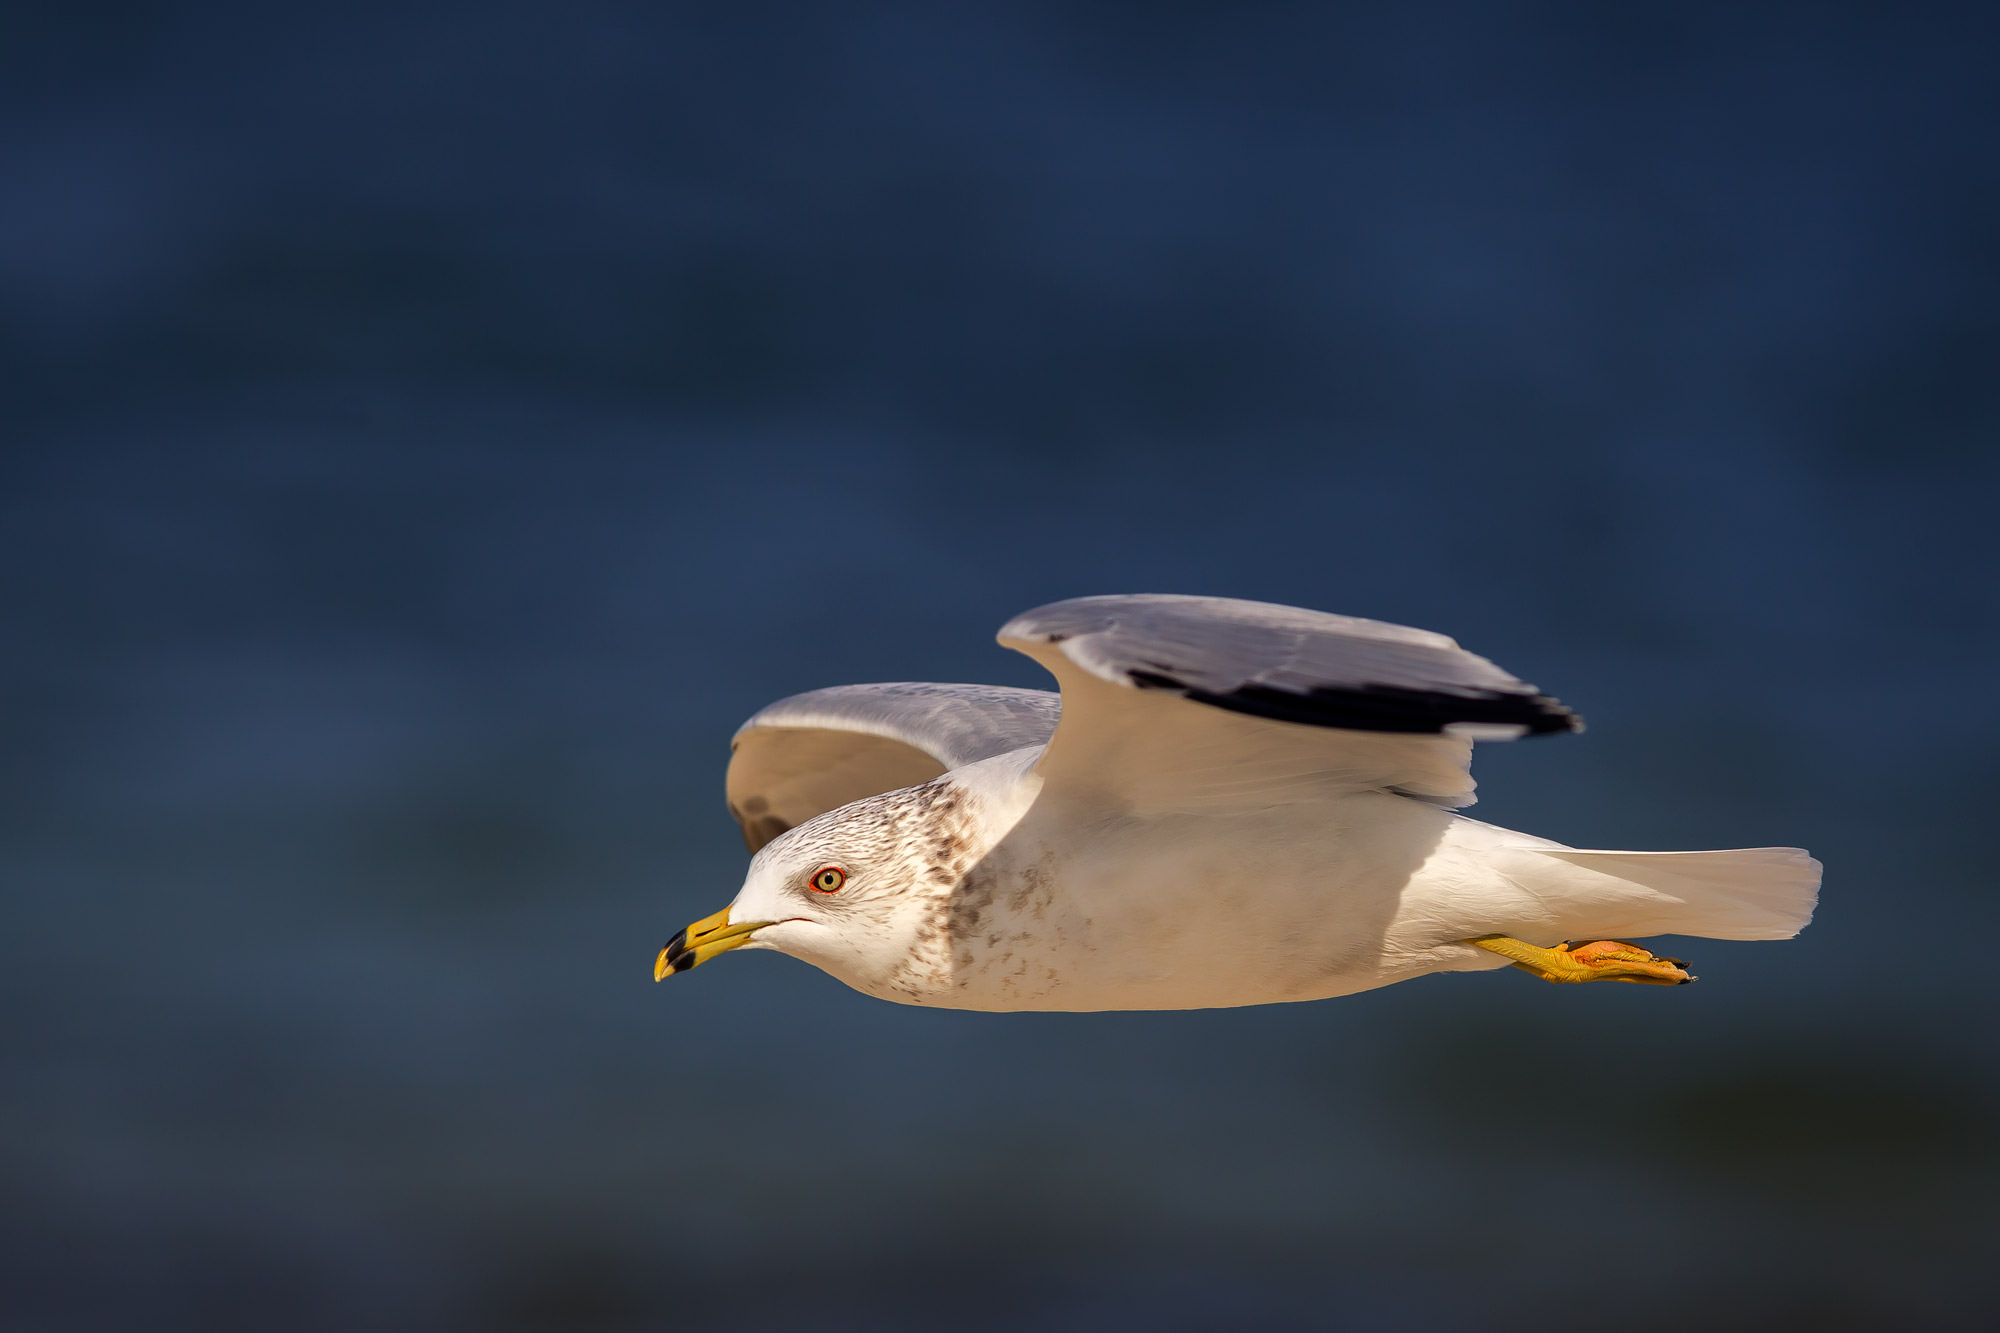 Gull, Ring Billed Gull, Florida, limited edition, photograph, photo